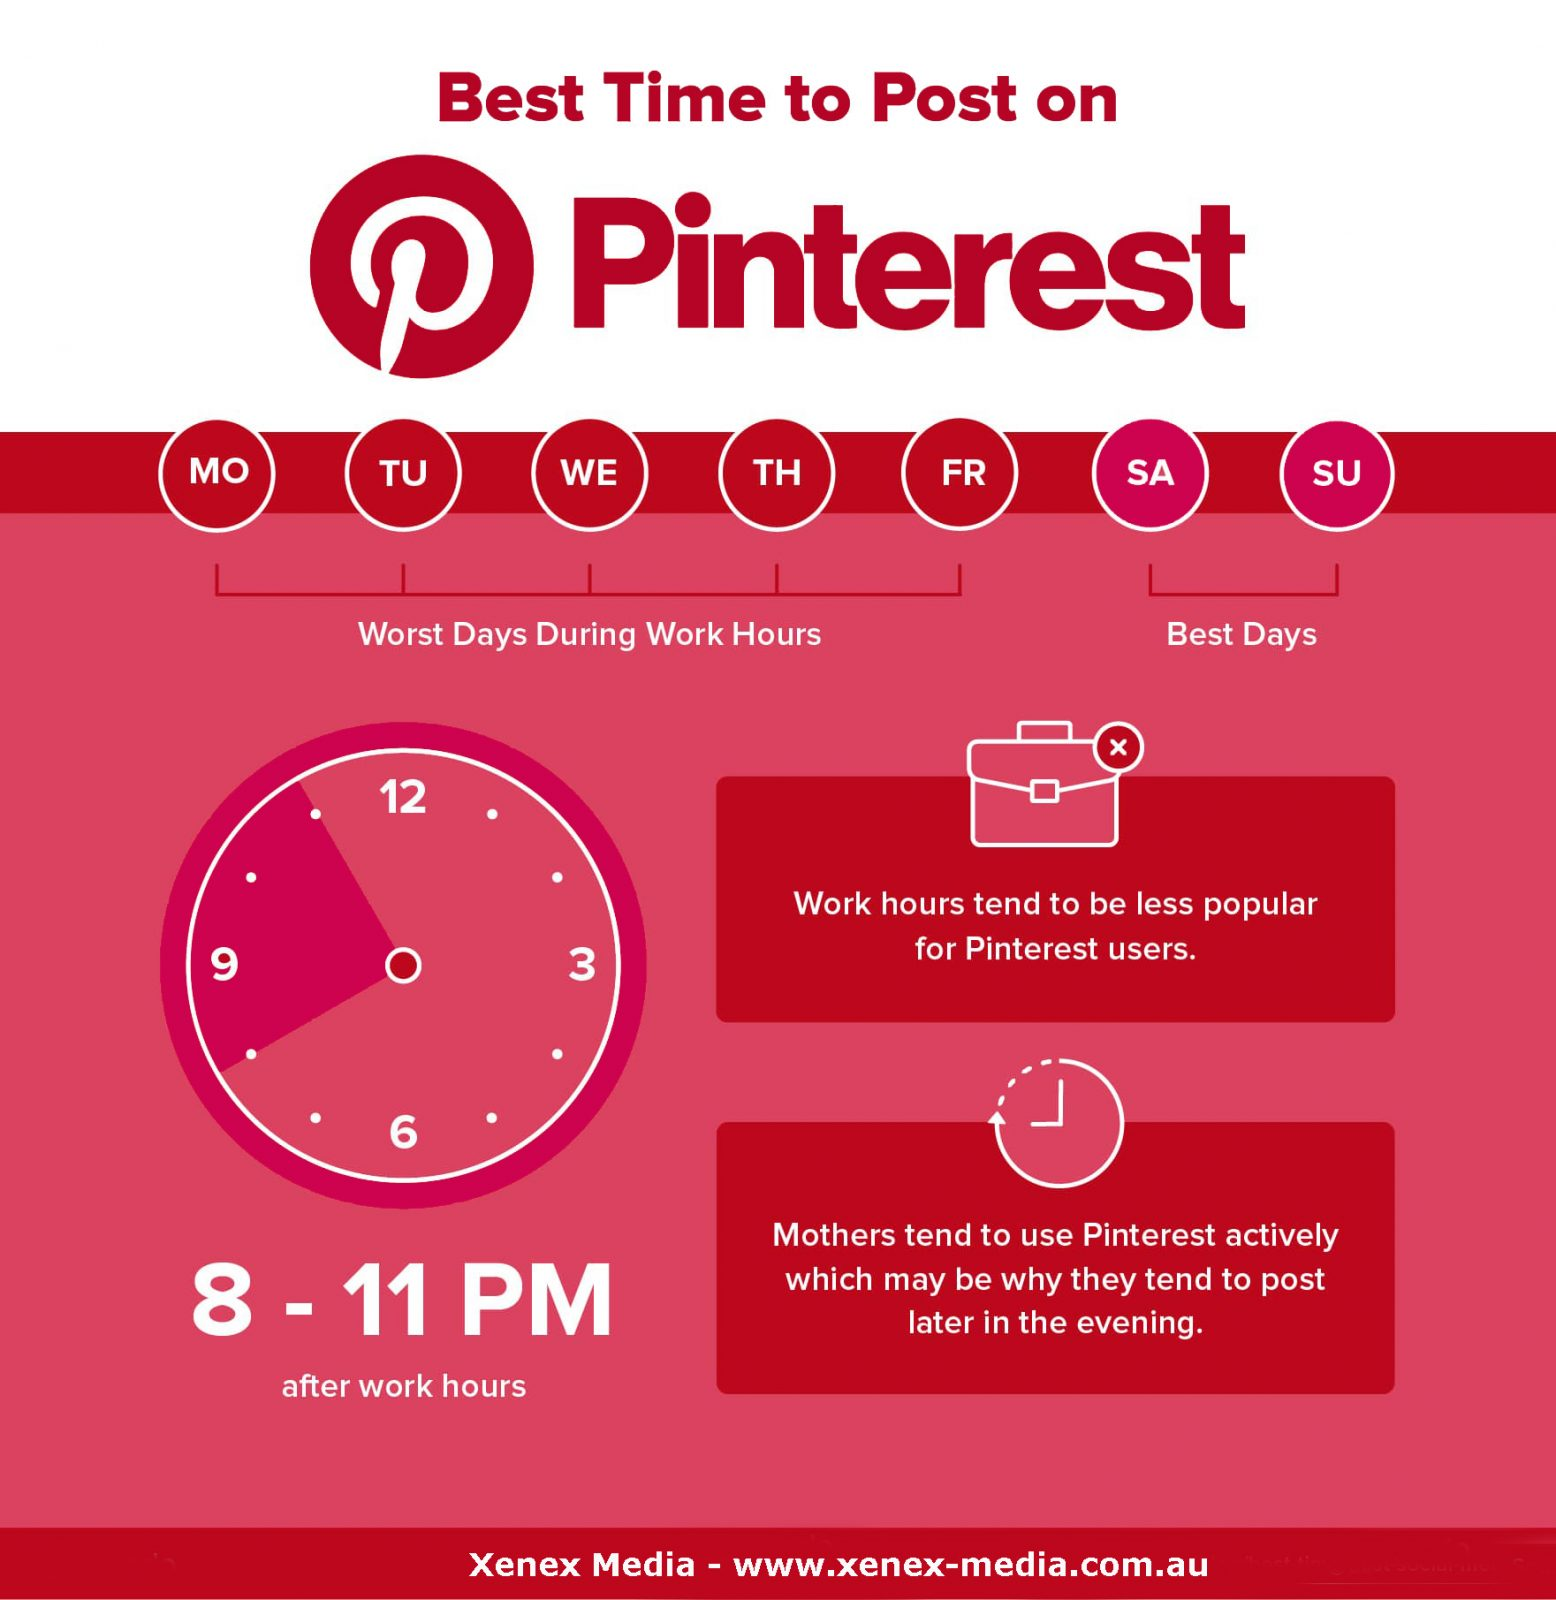 Best time to post on Pinterest in 2019, best time to post on pinterets 2019, best time to post on pinterest